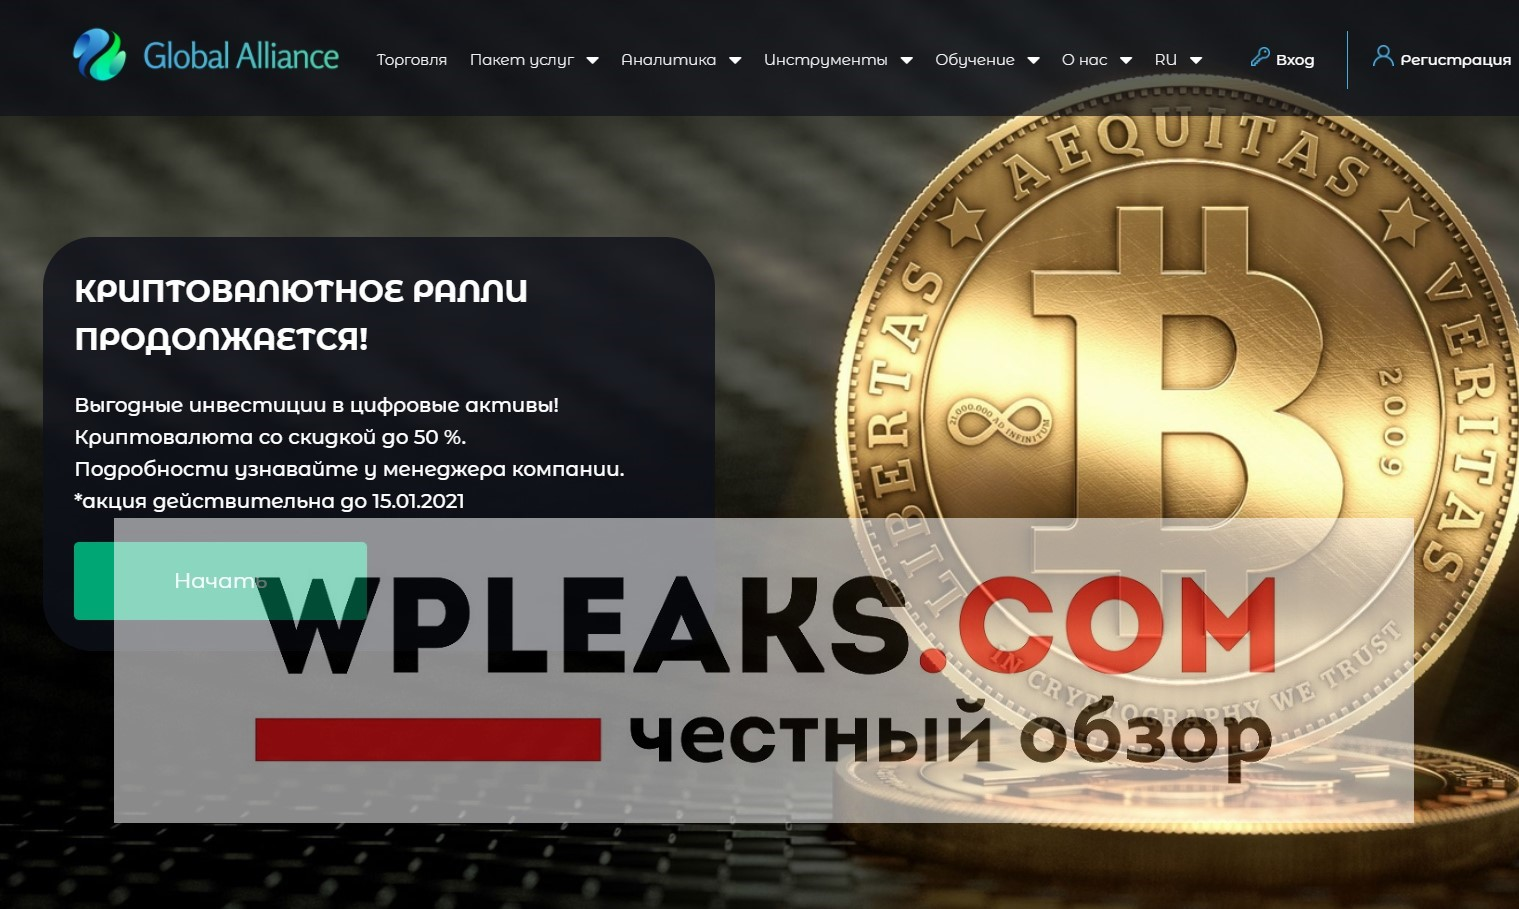 glballiance.com отзывы